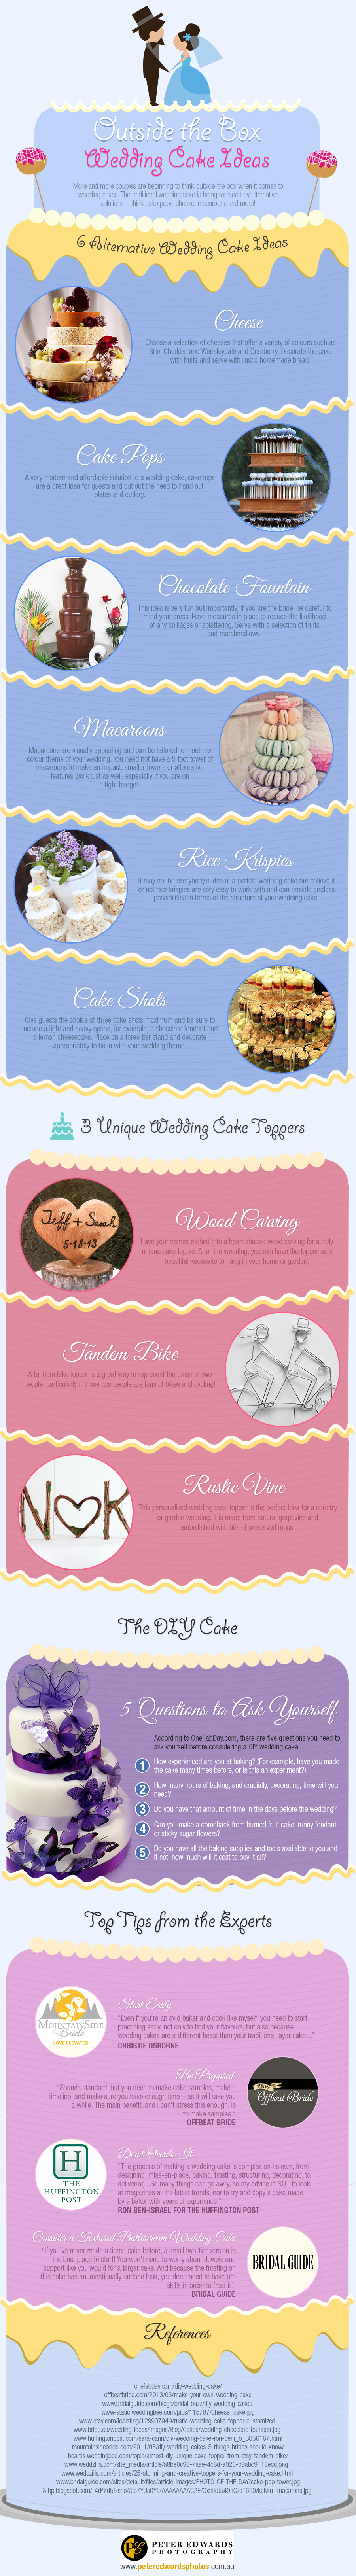 Outside the Box Wedding Cake Ideas